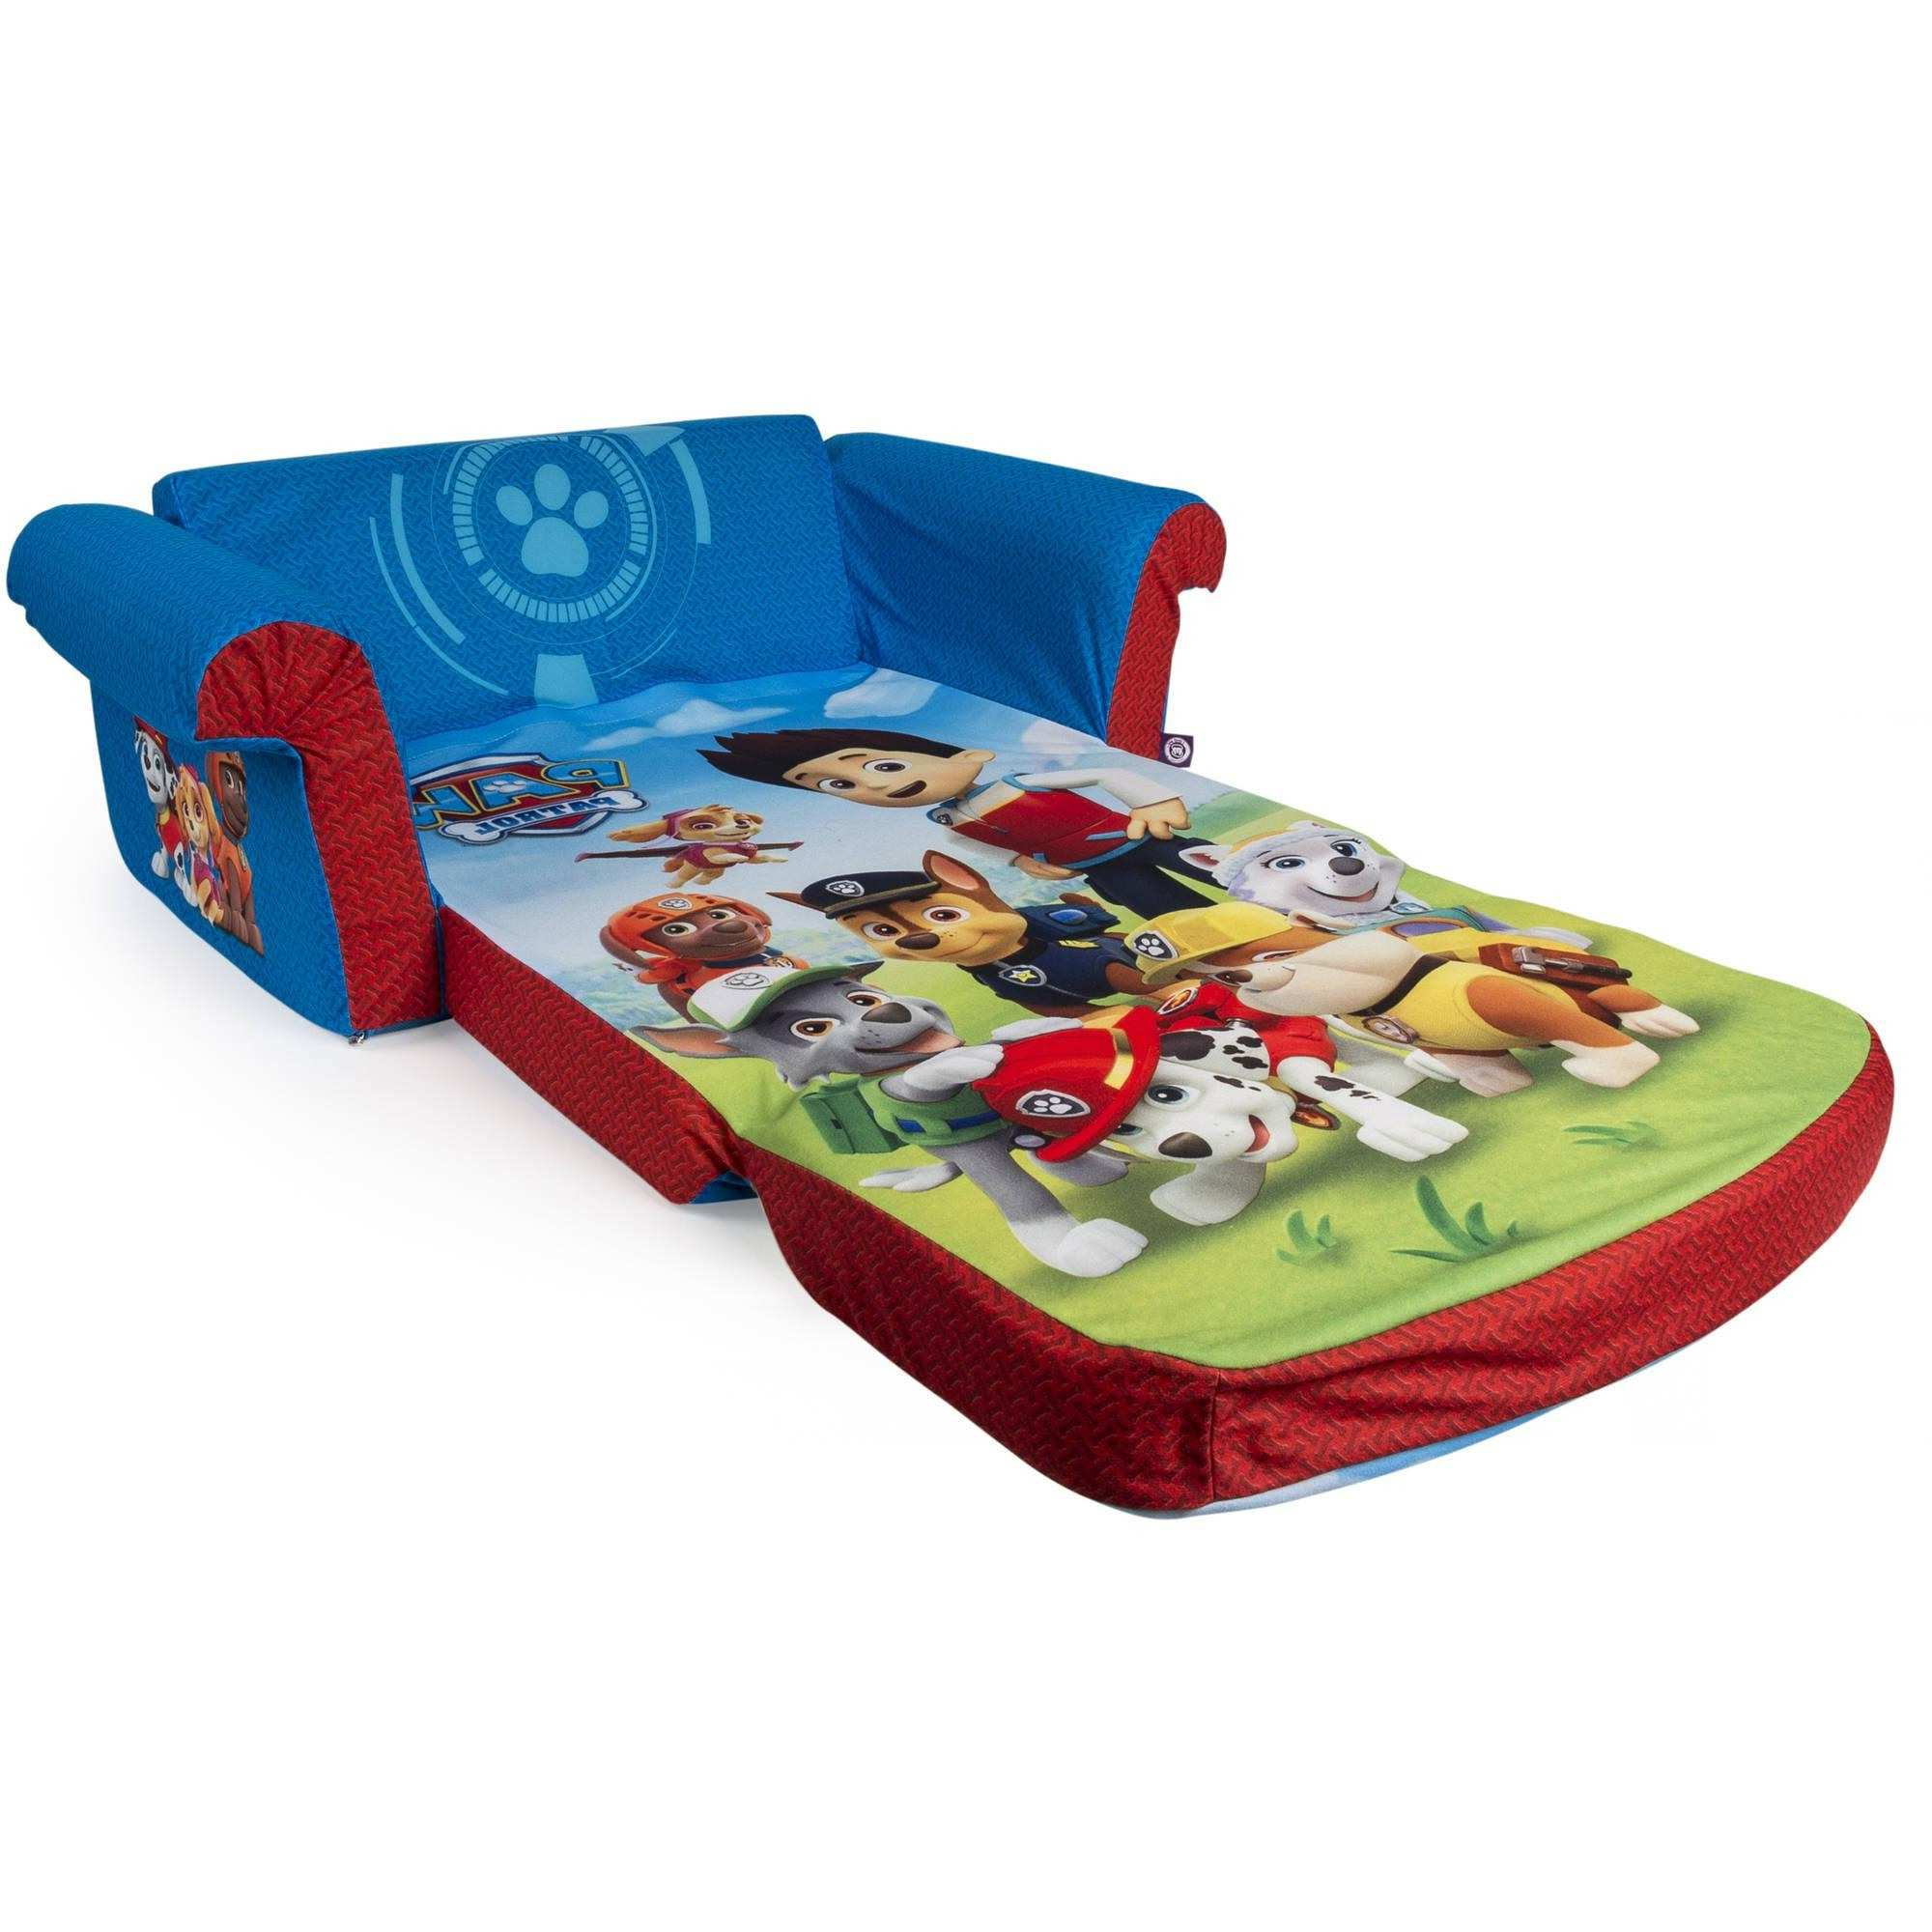 Most Current 20 Best Childrens Sofa Bed Chairs From Awesome Flip Open Foam Sofa Throughout Childrens Sofa Bed Chairs (View 10 of 20)